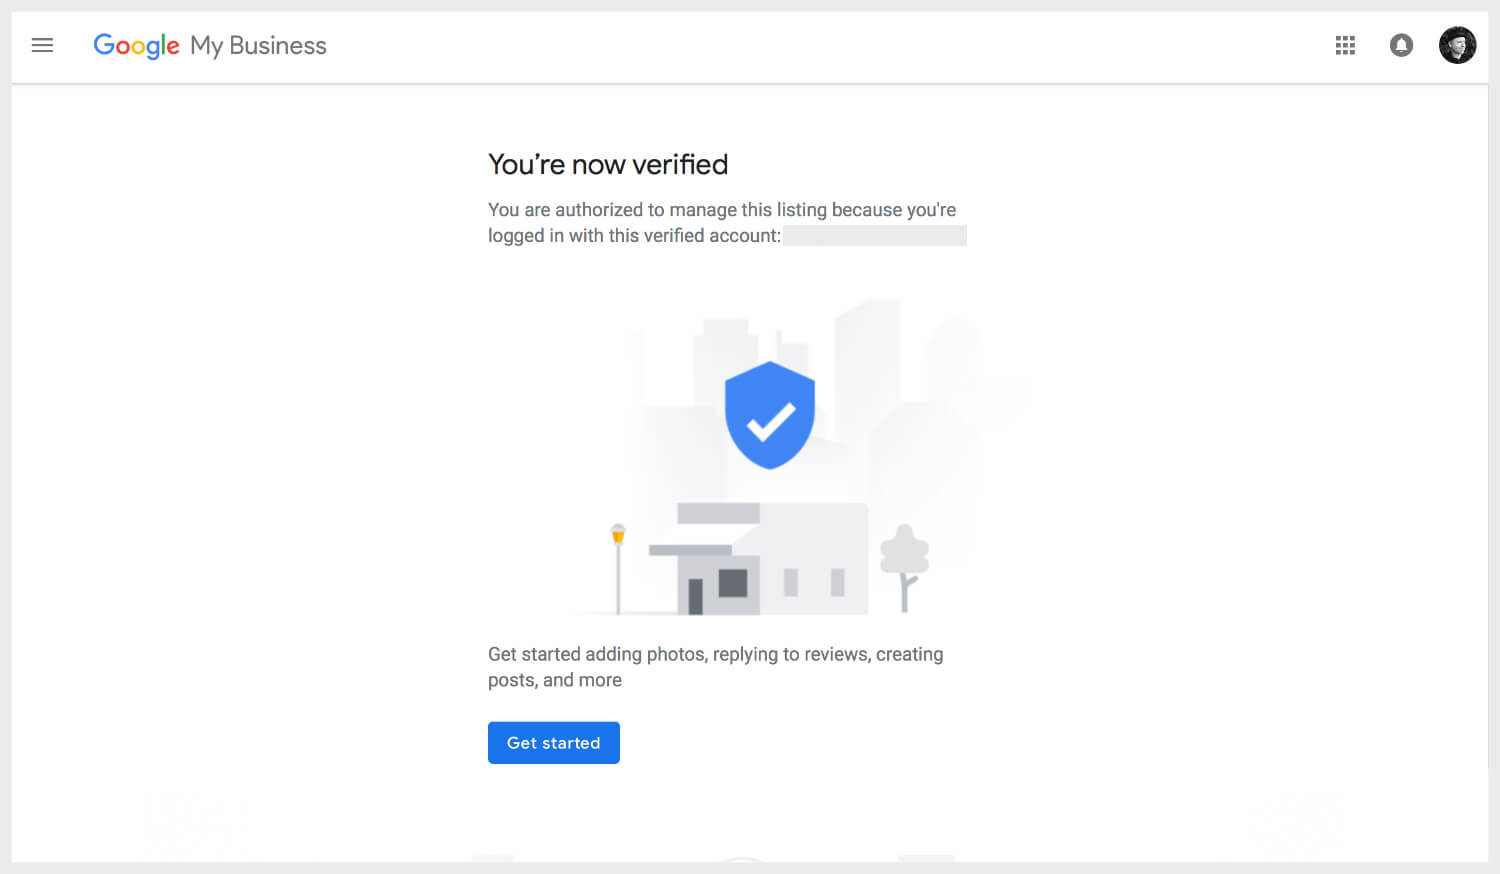 Google My Business: How To Claim And Verify Your Business [2018]